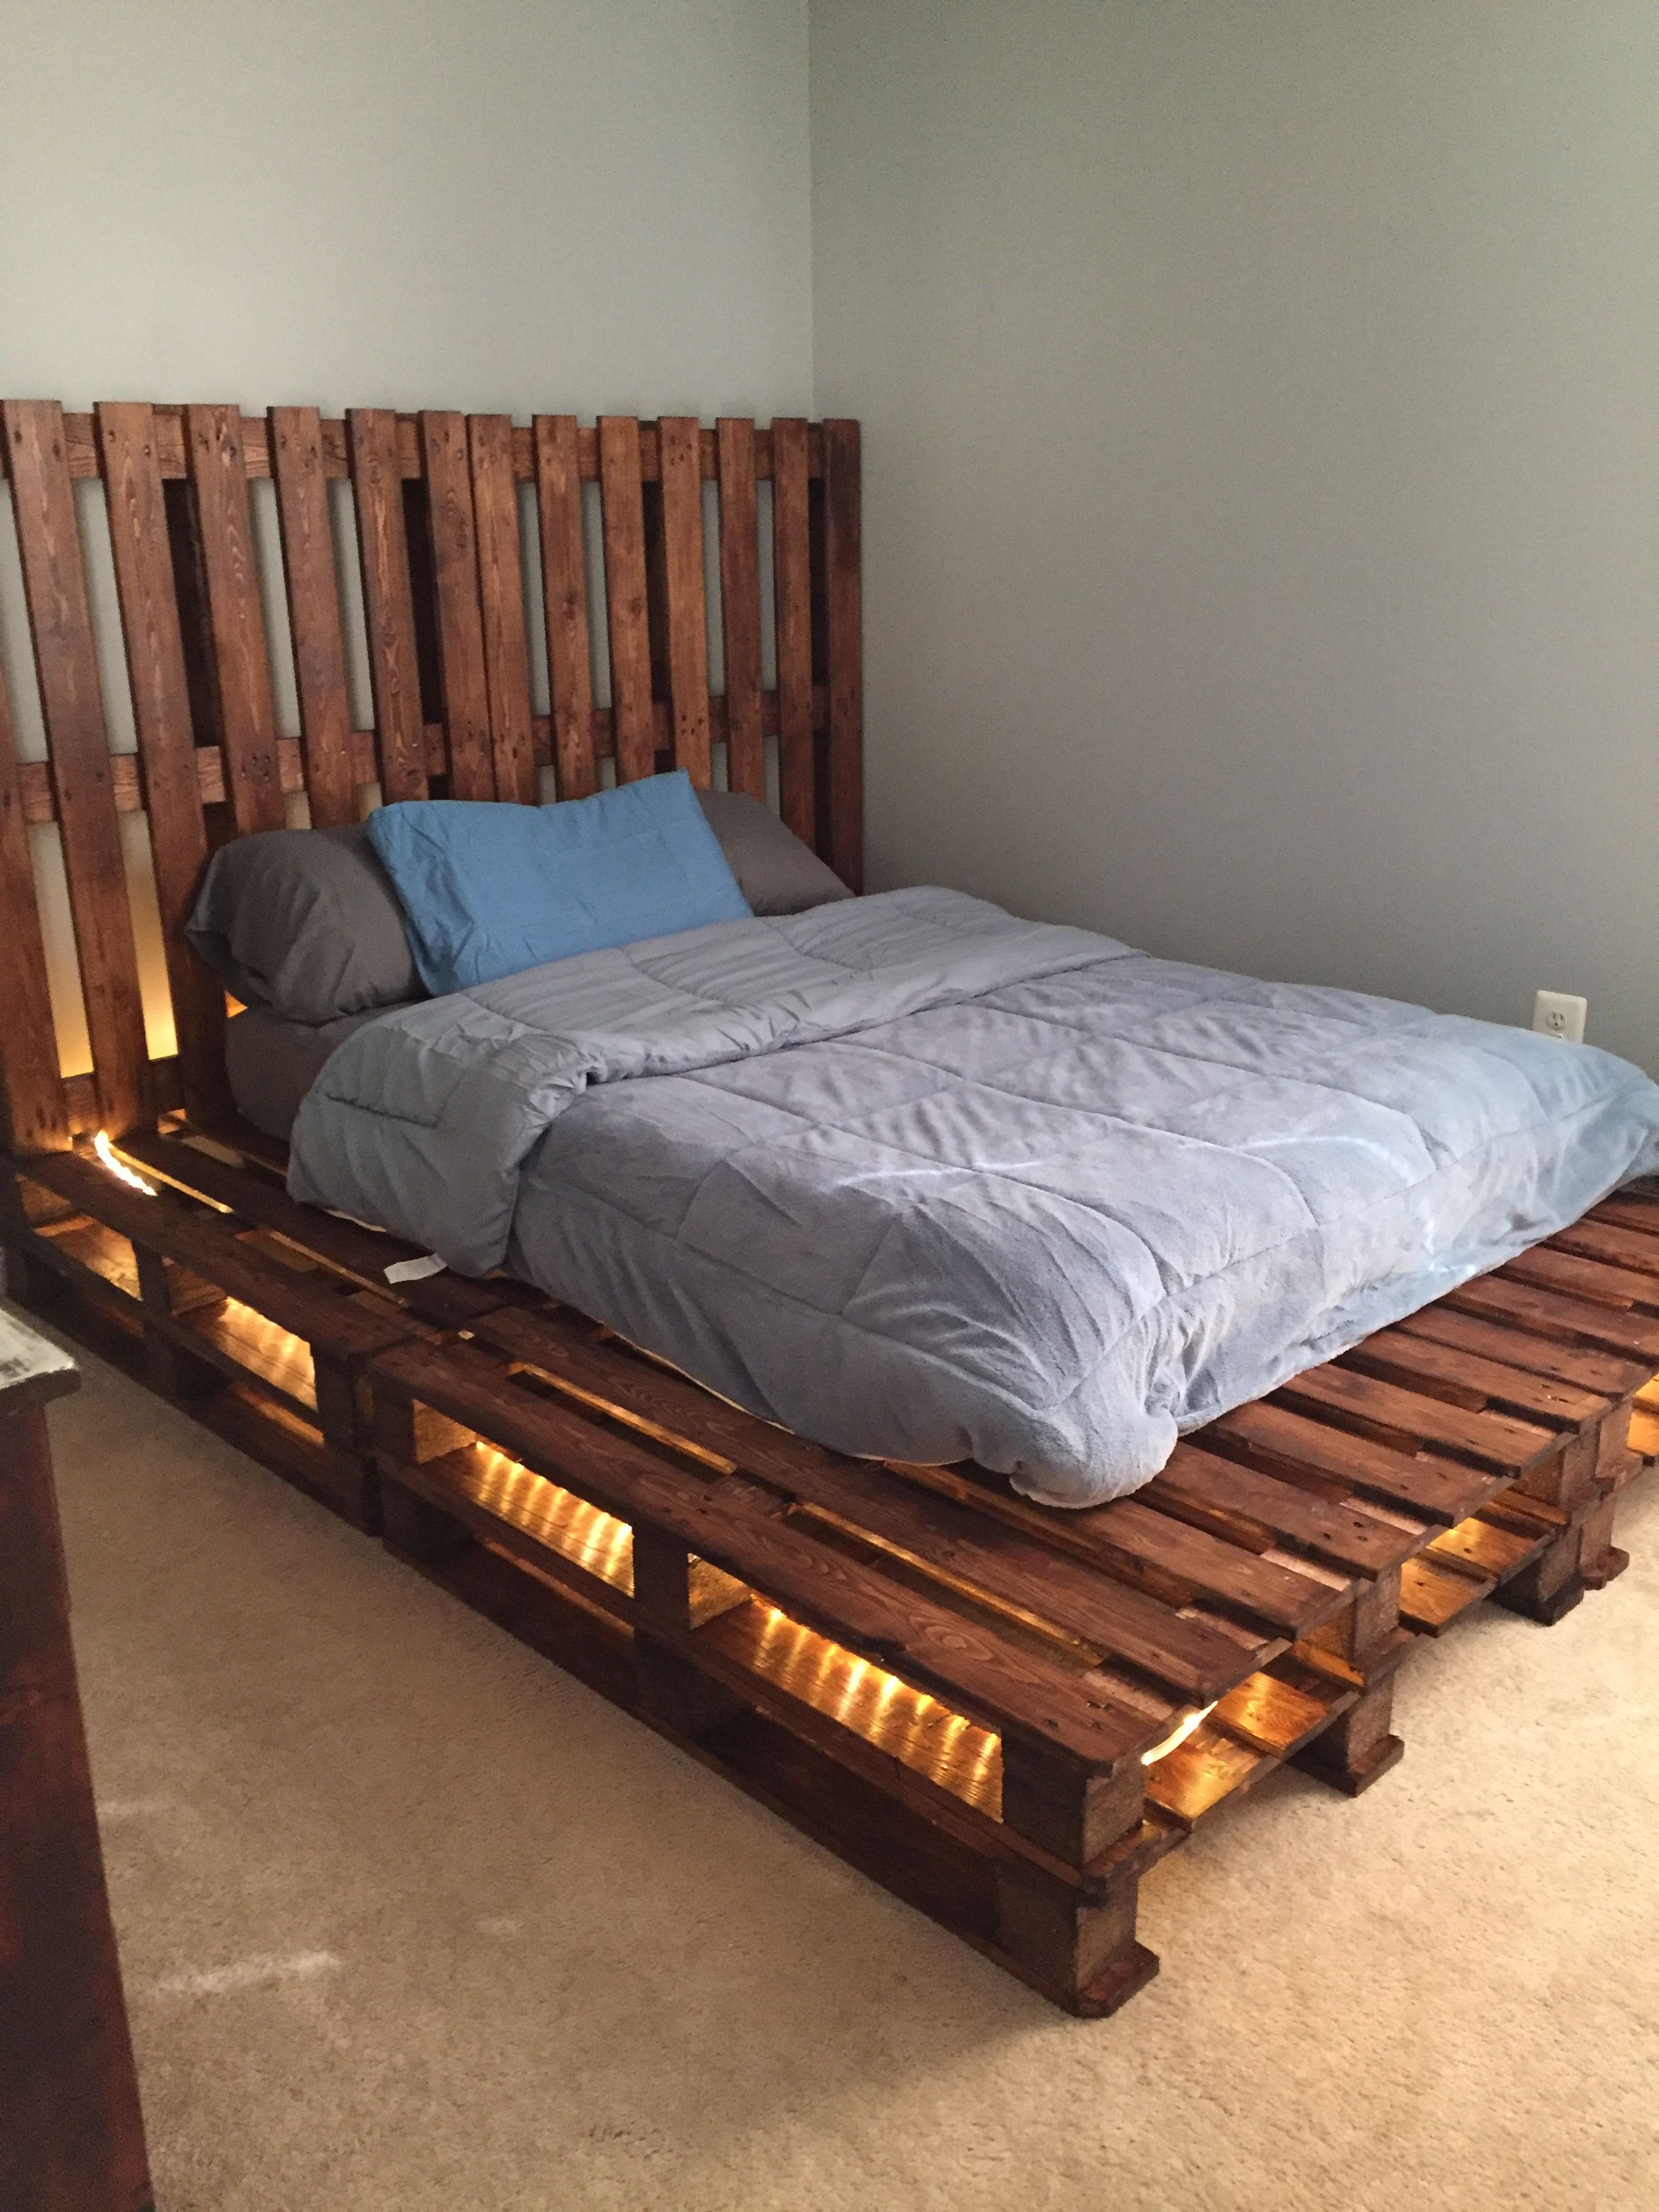 2nd Pallet Bed In A Rustic Themed Room 2 Full Pallets Across 2 High Pallet Beds Pallet Bed Frames Pallet Bed